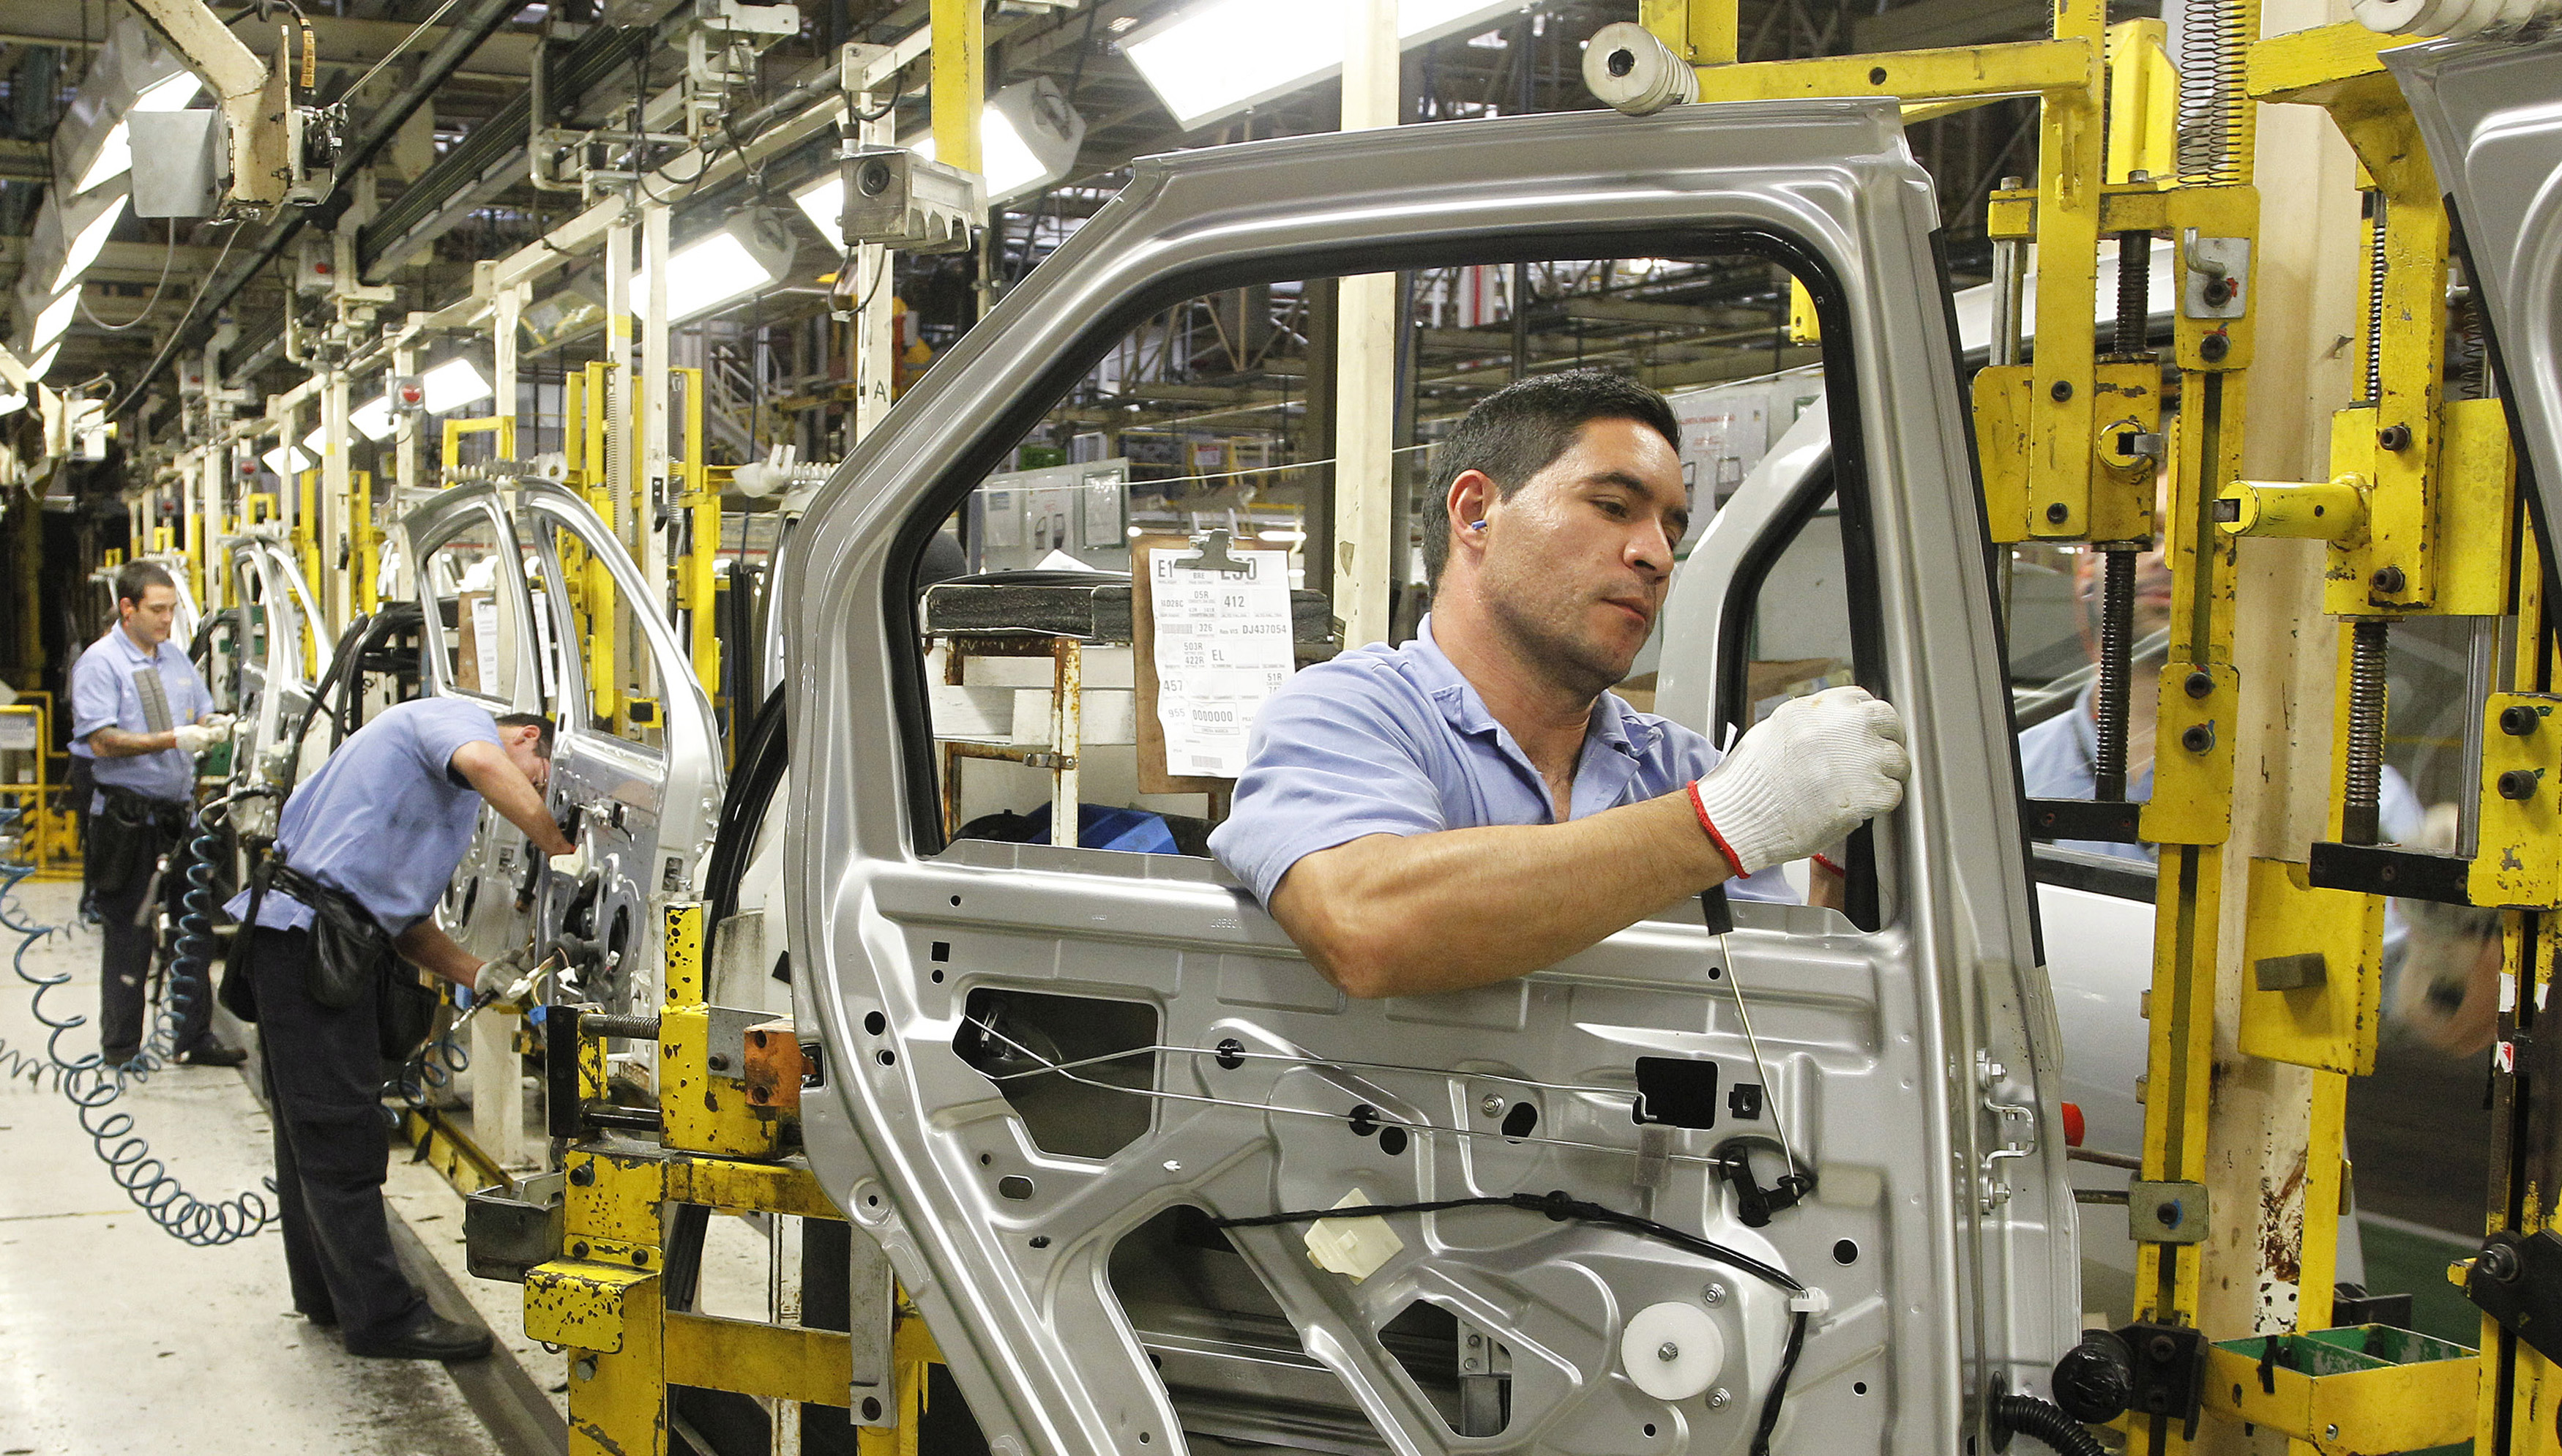 Employees work on the assembly line at the Renault plant in Sao Jose dos Pinhais August 2, 2012. President of the Brazilian branch for French automaker Renault SA Olivier Murguet said on Thursday that Renault SA plans to expand the capacity of its Brazilian motor plant by 25 percent by 2013 as part of a sales offensive in Latin America's largest economy.     REUTERS/Rodolfo Buhrer (BRAZIL - Tags: BUSINESS TRANSPORT) - GM1E8830G9Y01